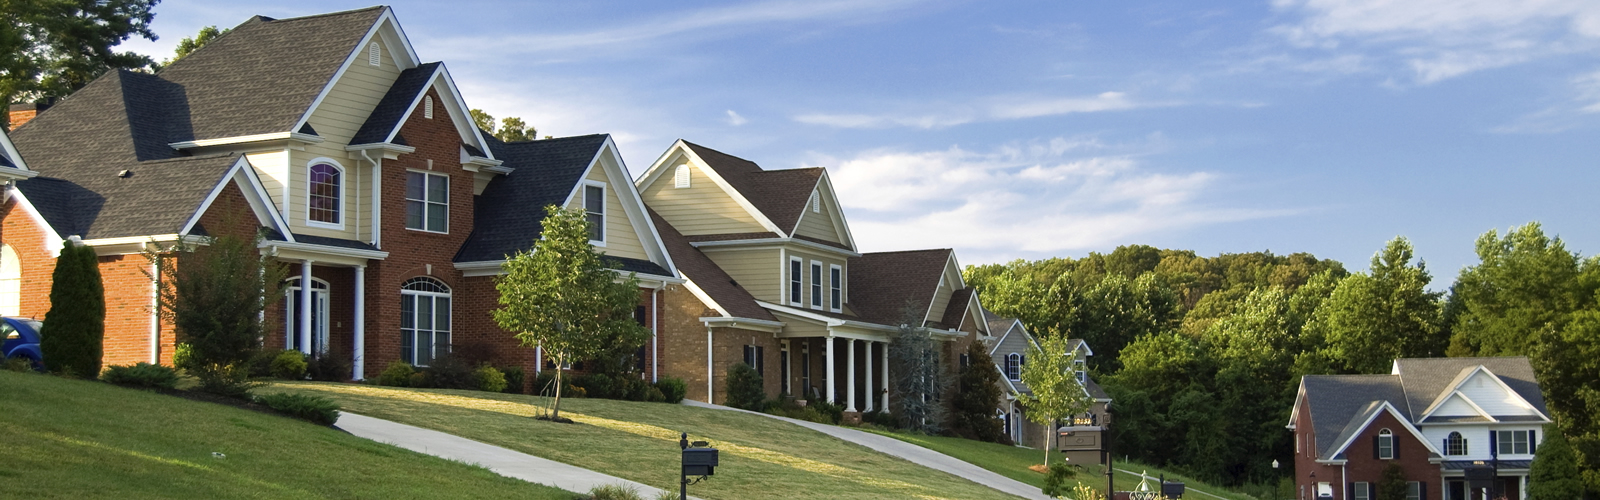 Innisfil Homes for Sale